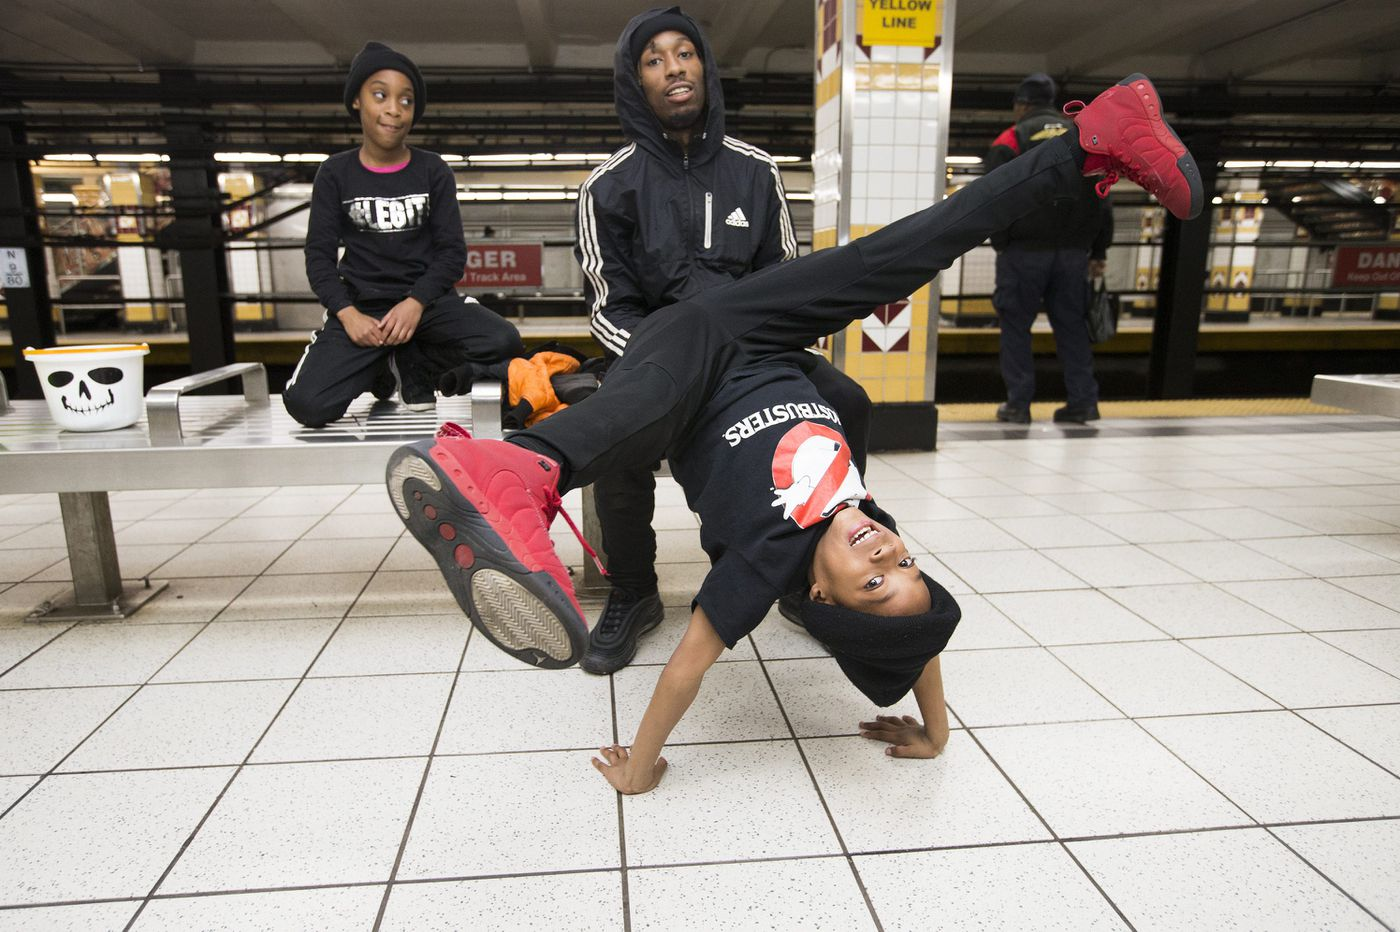 A Philly subway dance group seeks to 'inspire the youth'